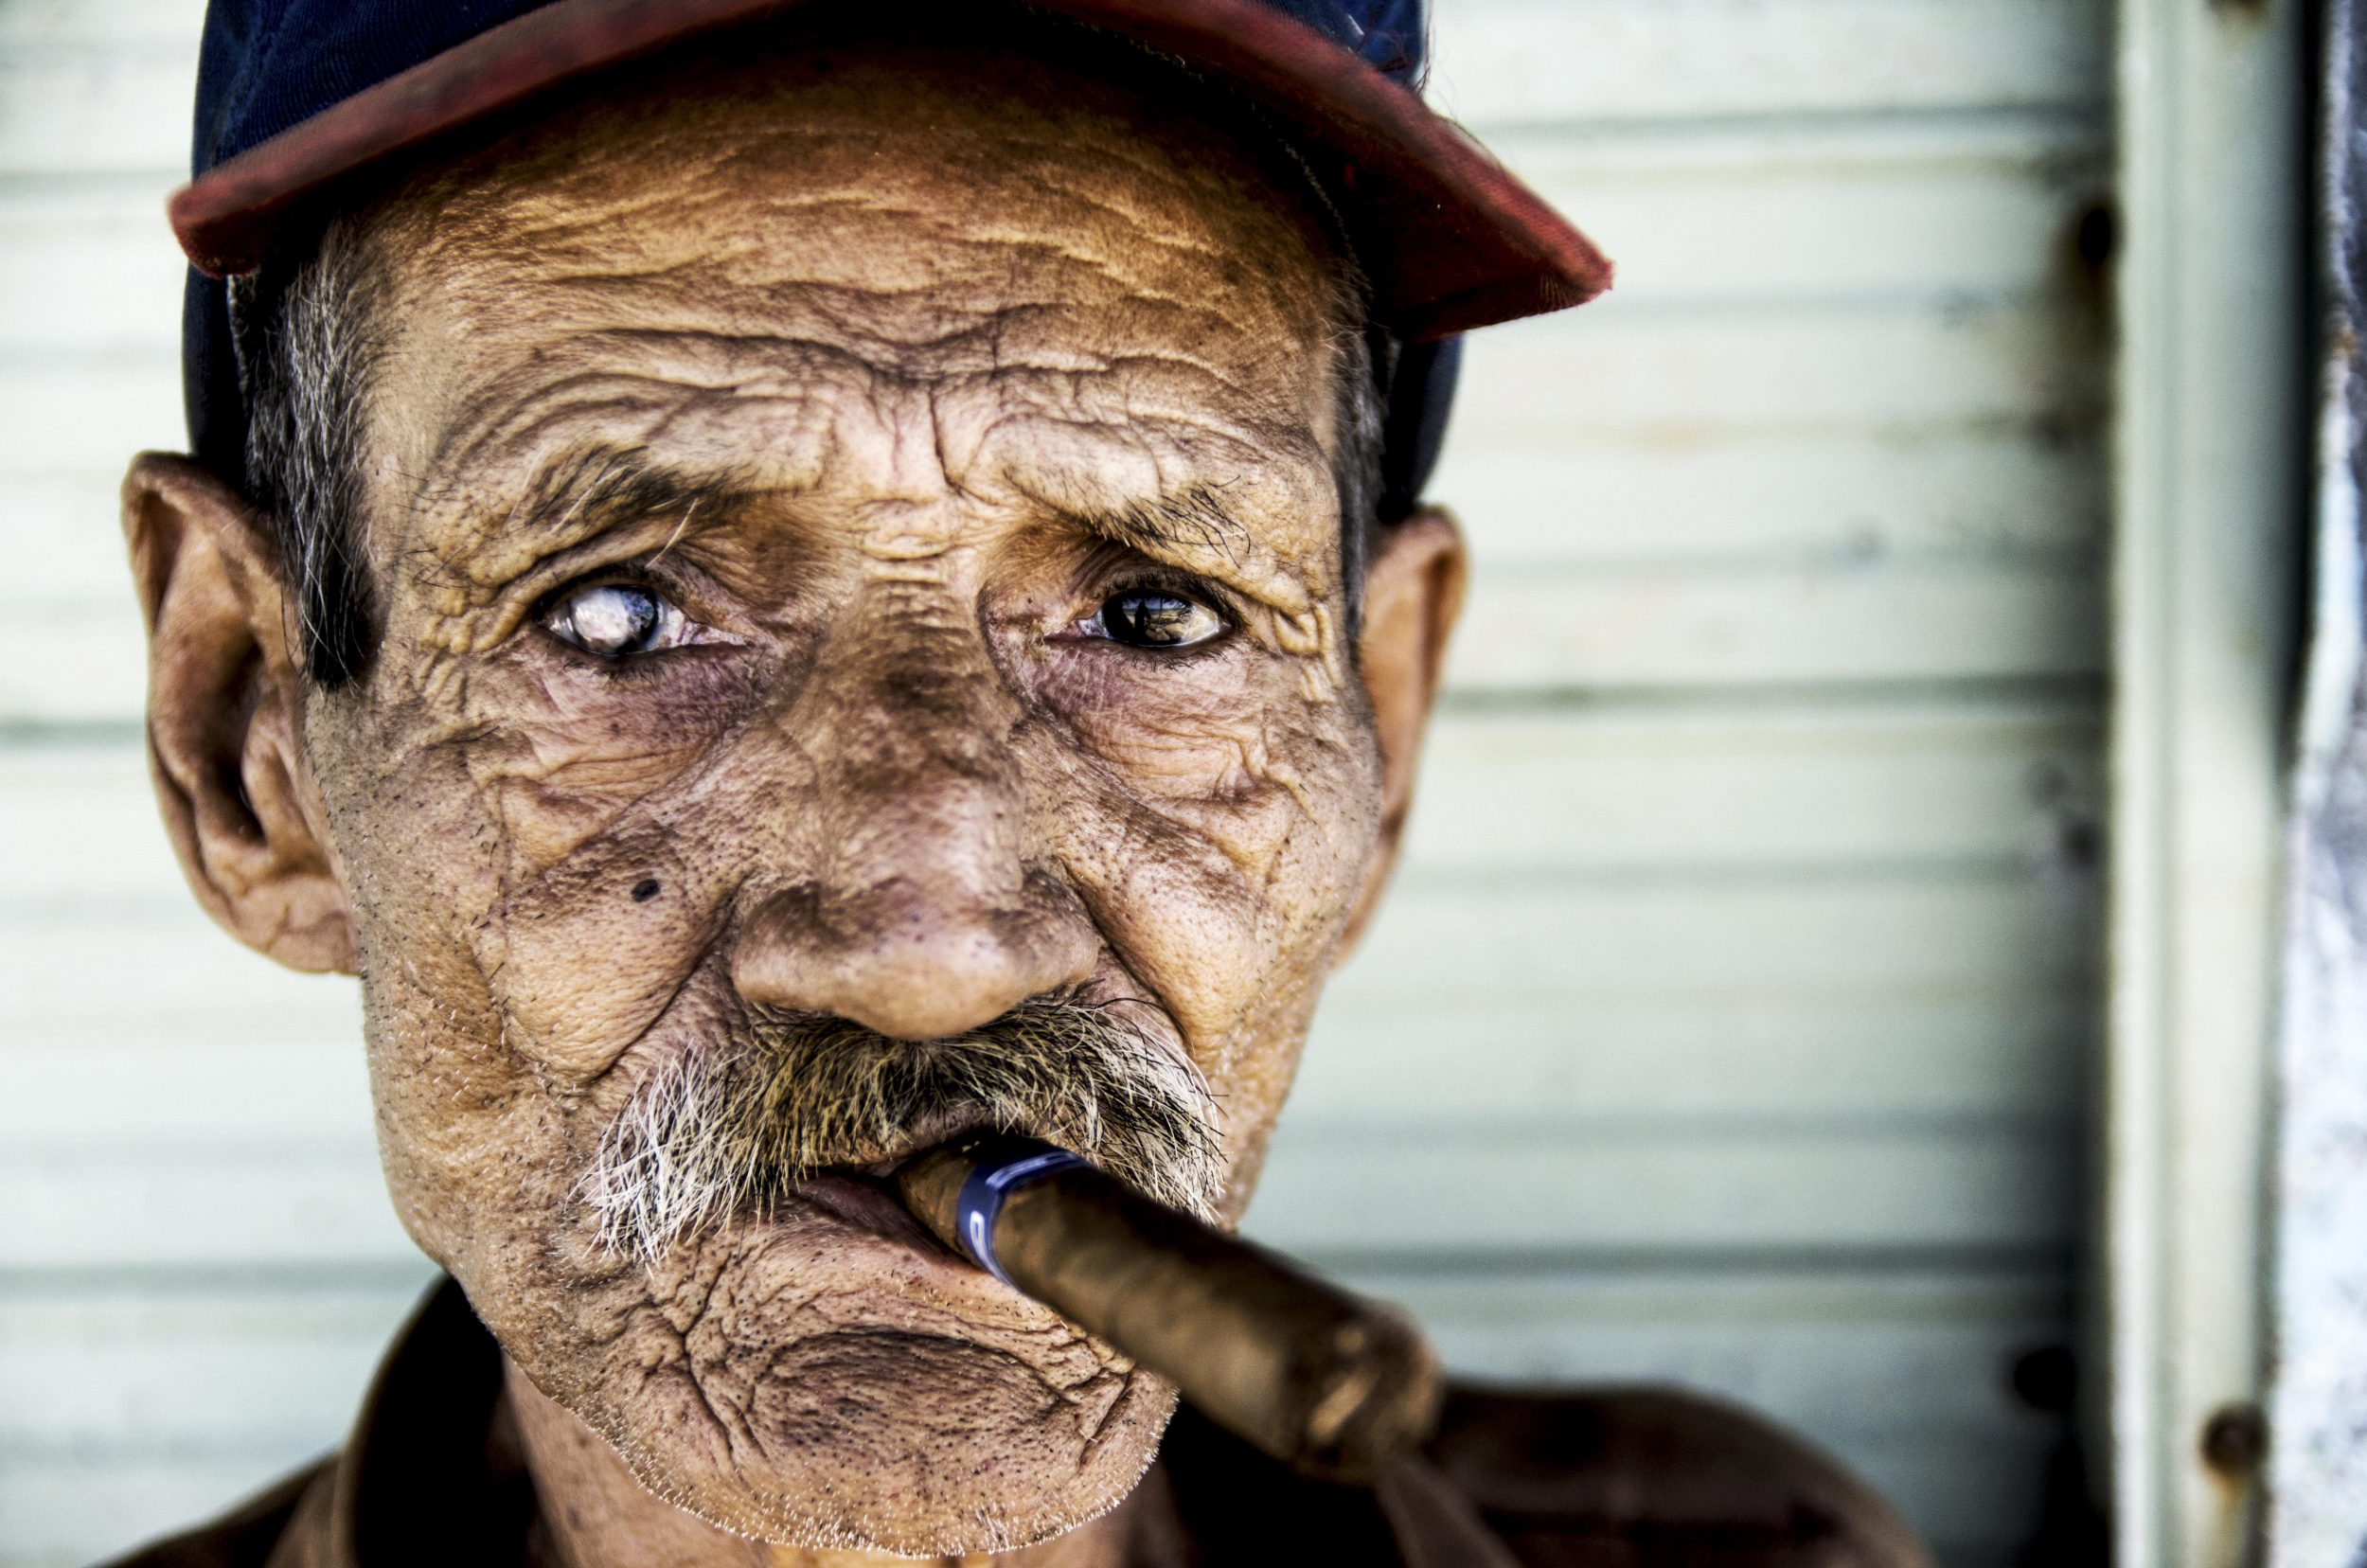 Man with a cigar, Cuba (by Thai Neave, travel photographer)